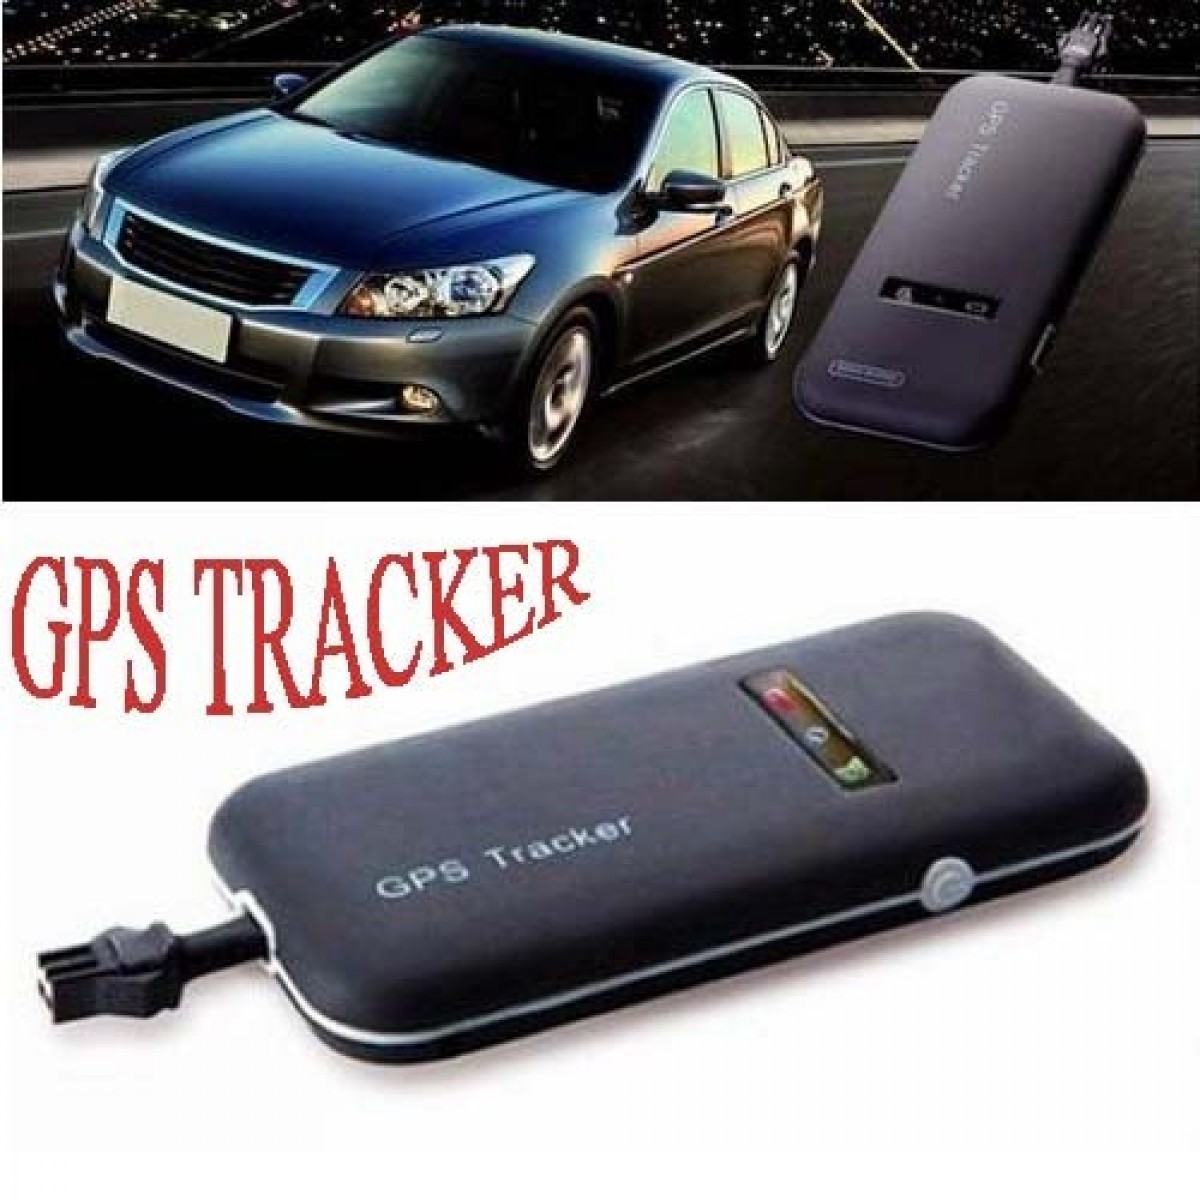 Hidden Gps Tracker For Car >> Soroko Trading Ltd - Smart Gadgets, Electronics, Spy , Hidden Digital Cameras , Save Energy ...